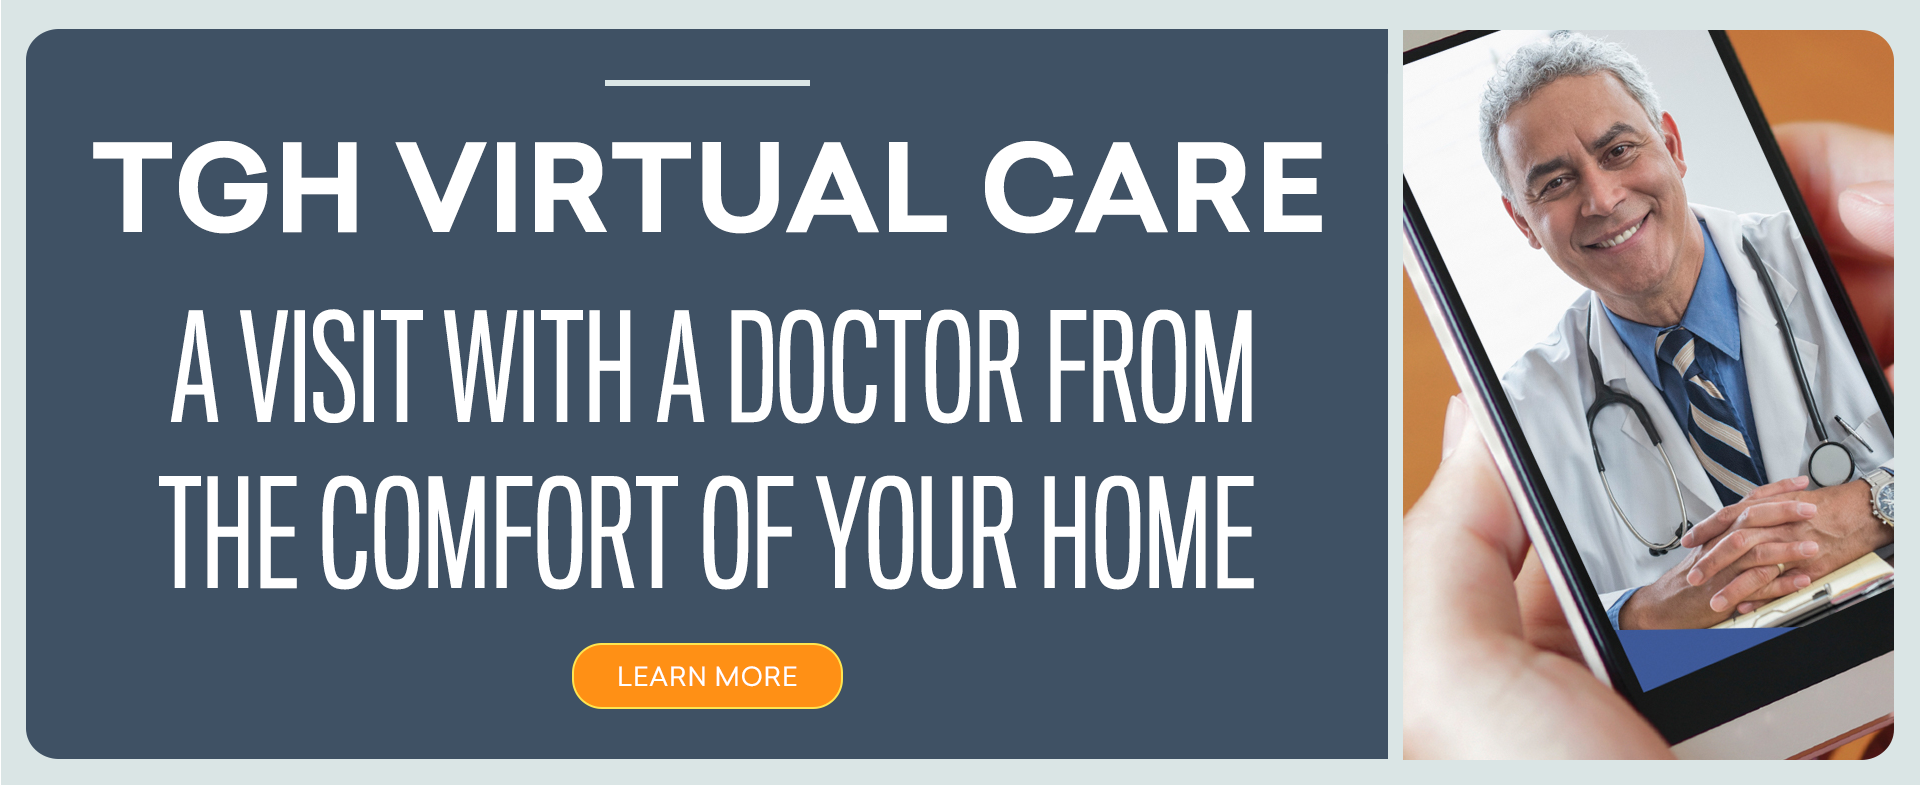 TGH Virtual Care A visit with a doctor from the comfort of your home